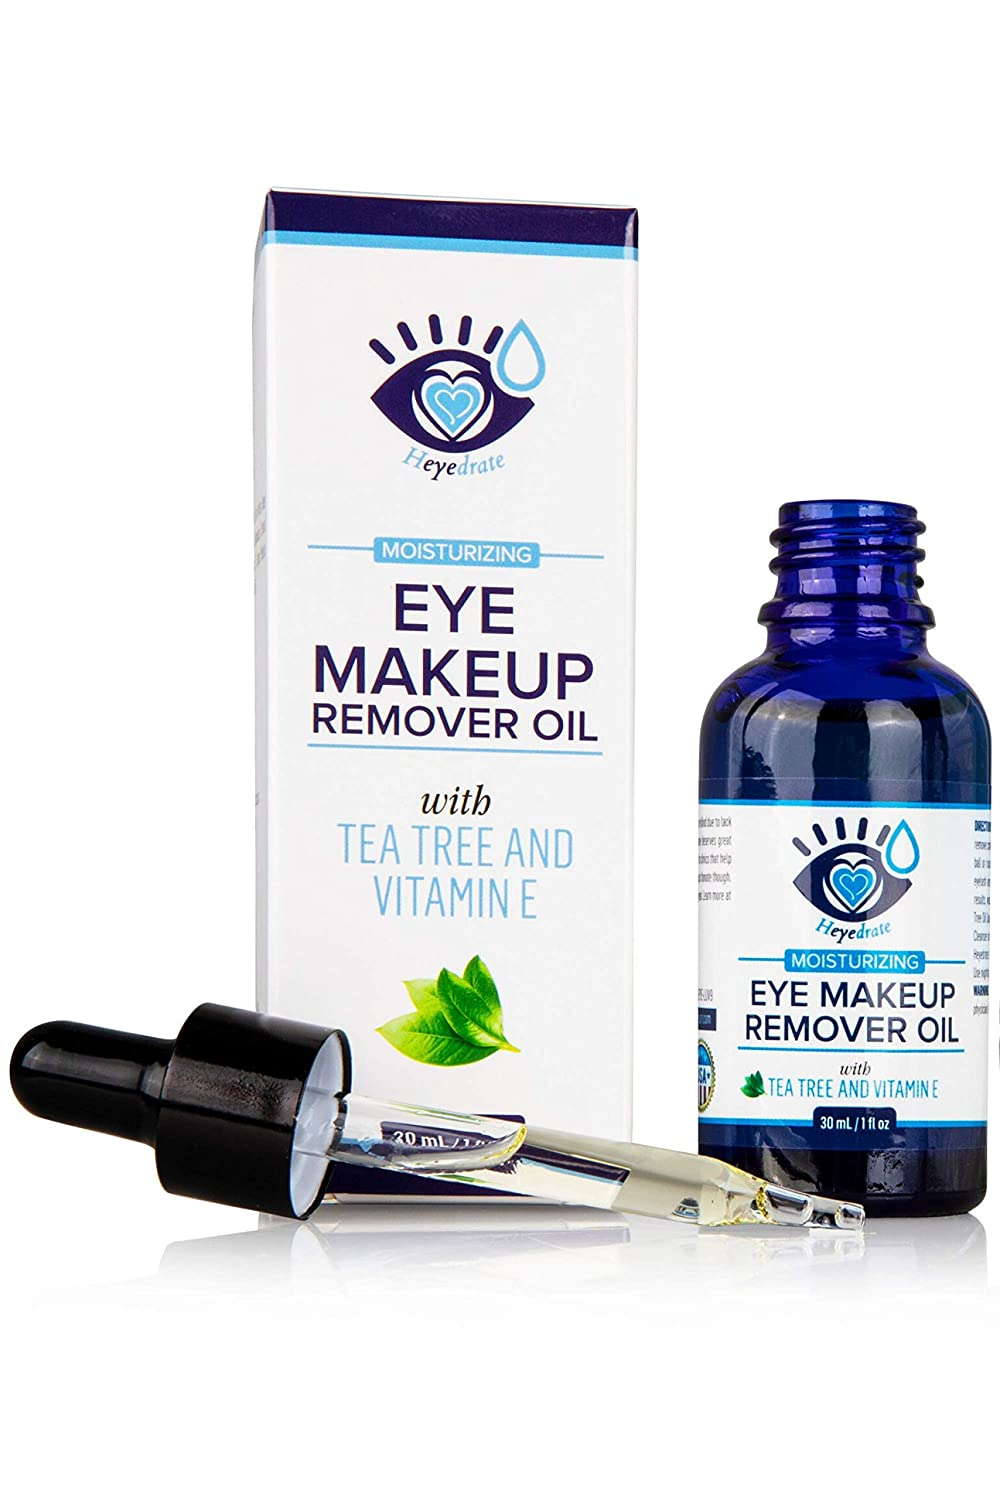 Gentle, Waterproof Eye Makeup Remover - Moisturizing and Organic with Vitamin E and Tea Tree Oil to Support Dry, Itchy Eyelids and Irritated Eyes (1-Pack) : Beauty